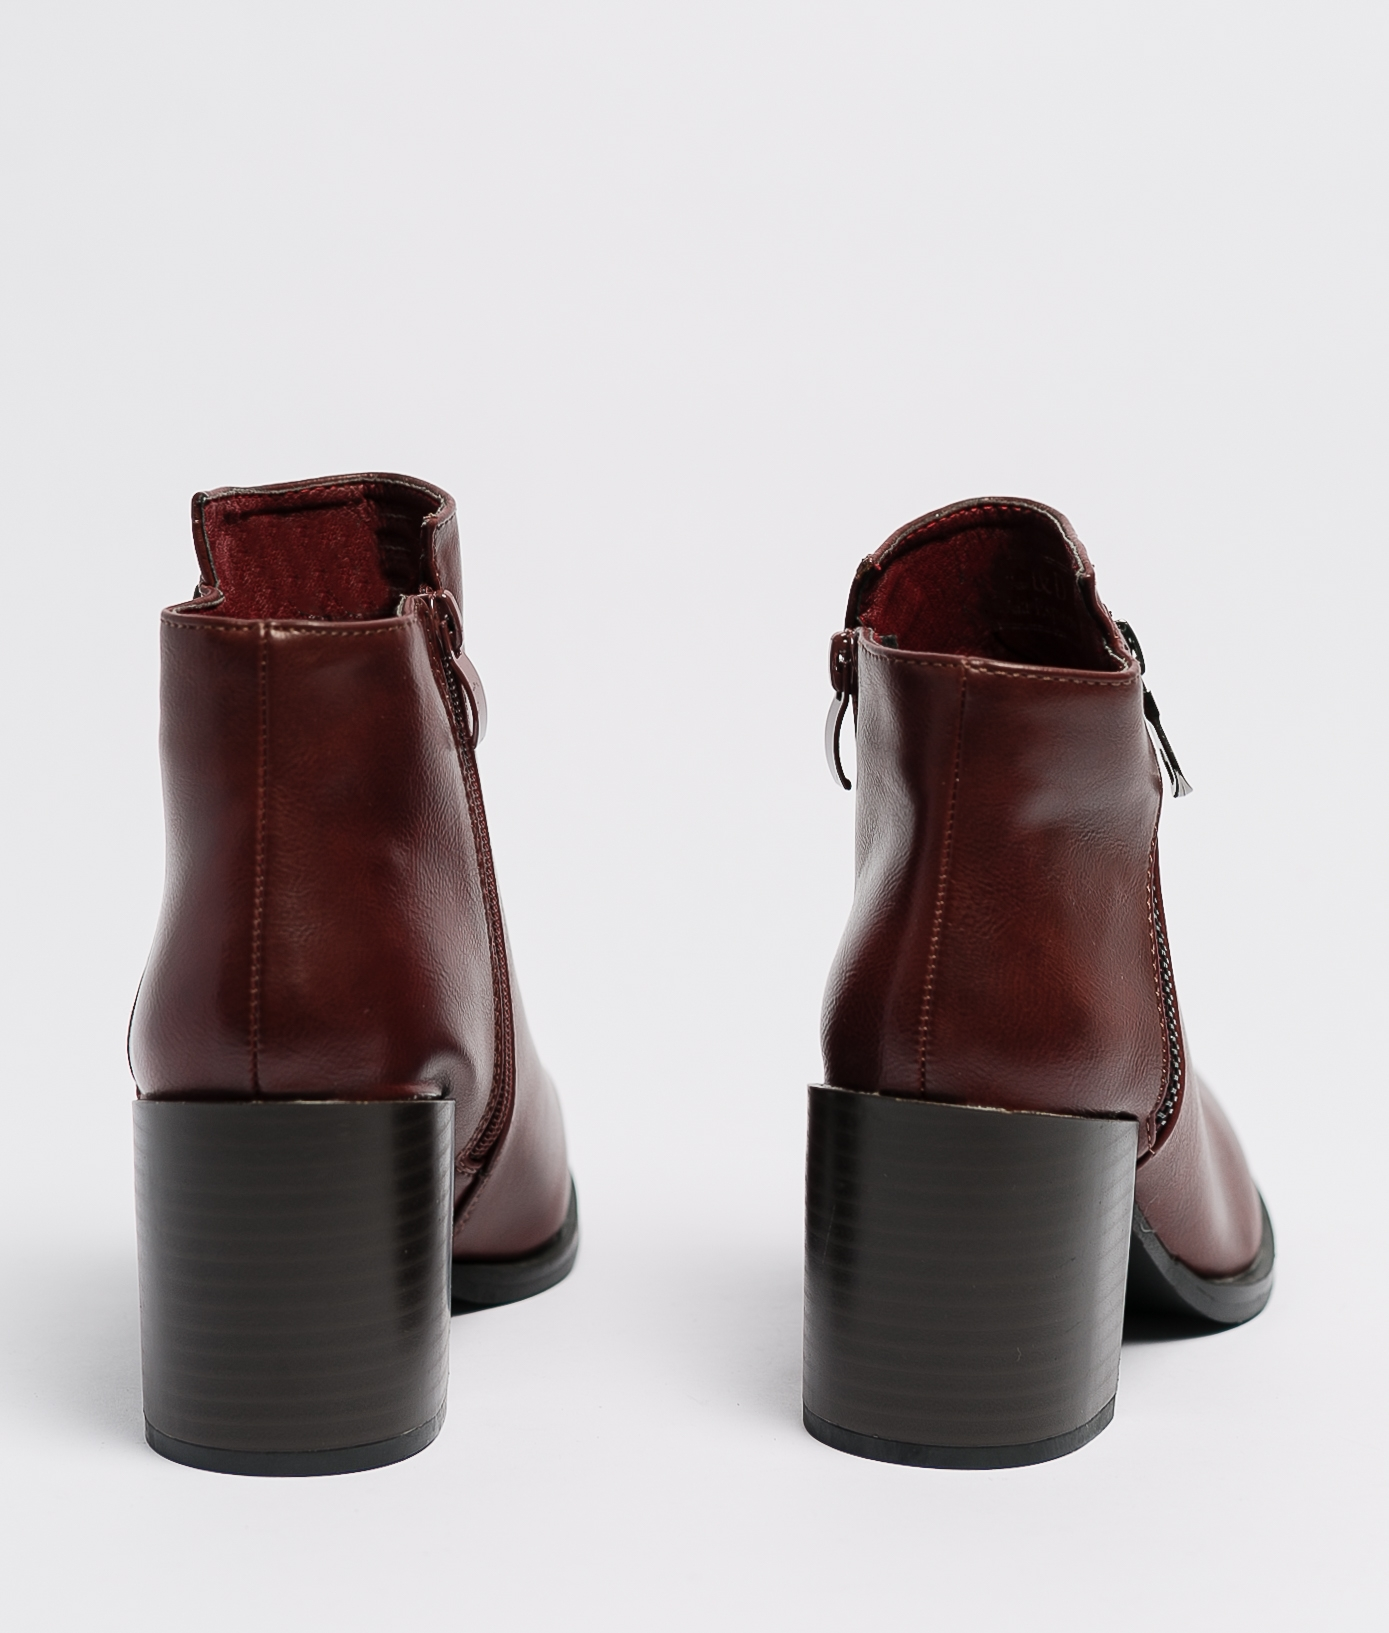 Low Boot Trica - Maroon